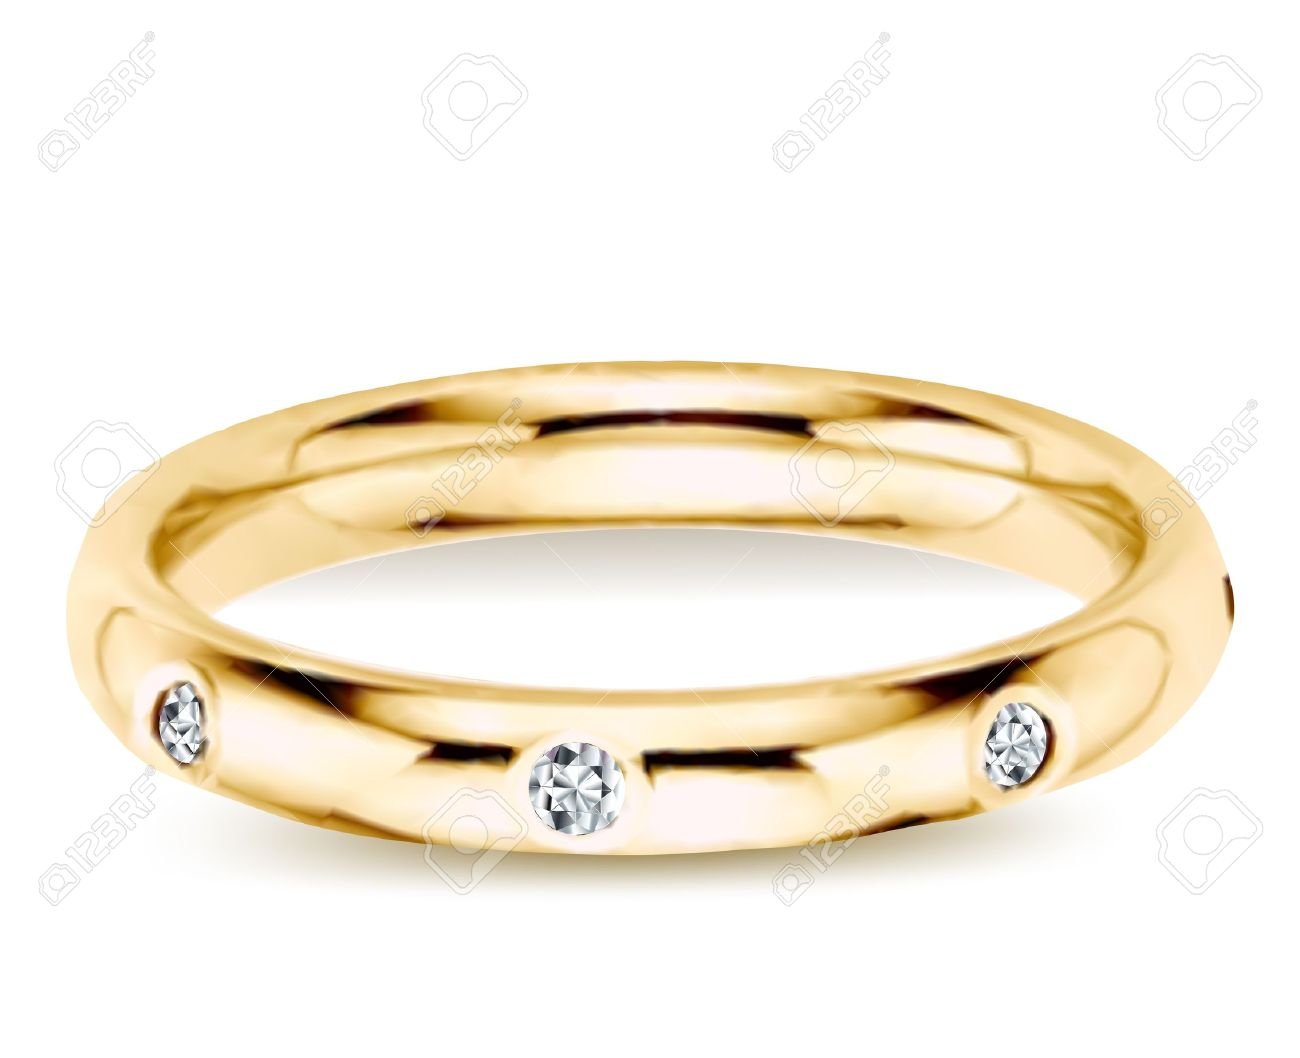 Golden ring with diamonds  Vector illustration Stock Vector - 14882745